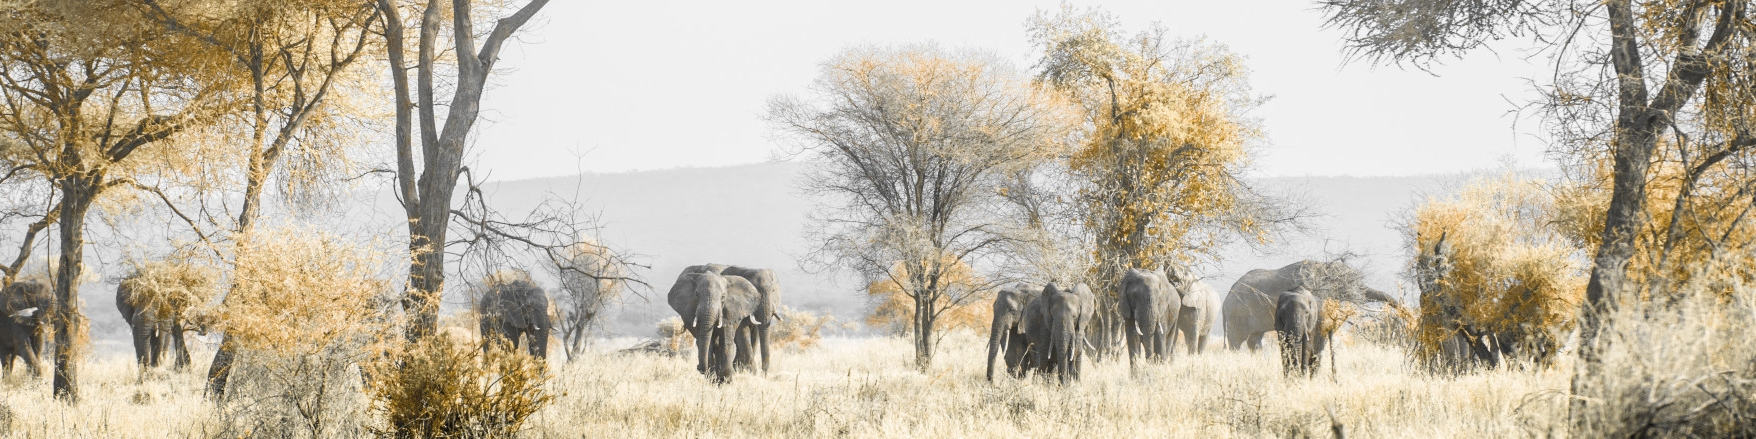 Africa Travel Guide Tanzania Tarangire National Park Elephants on the Move